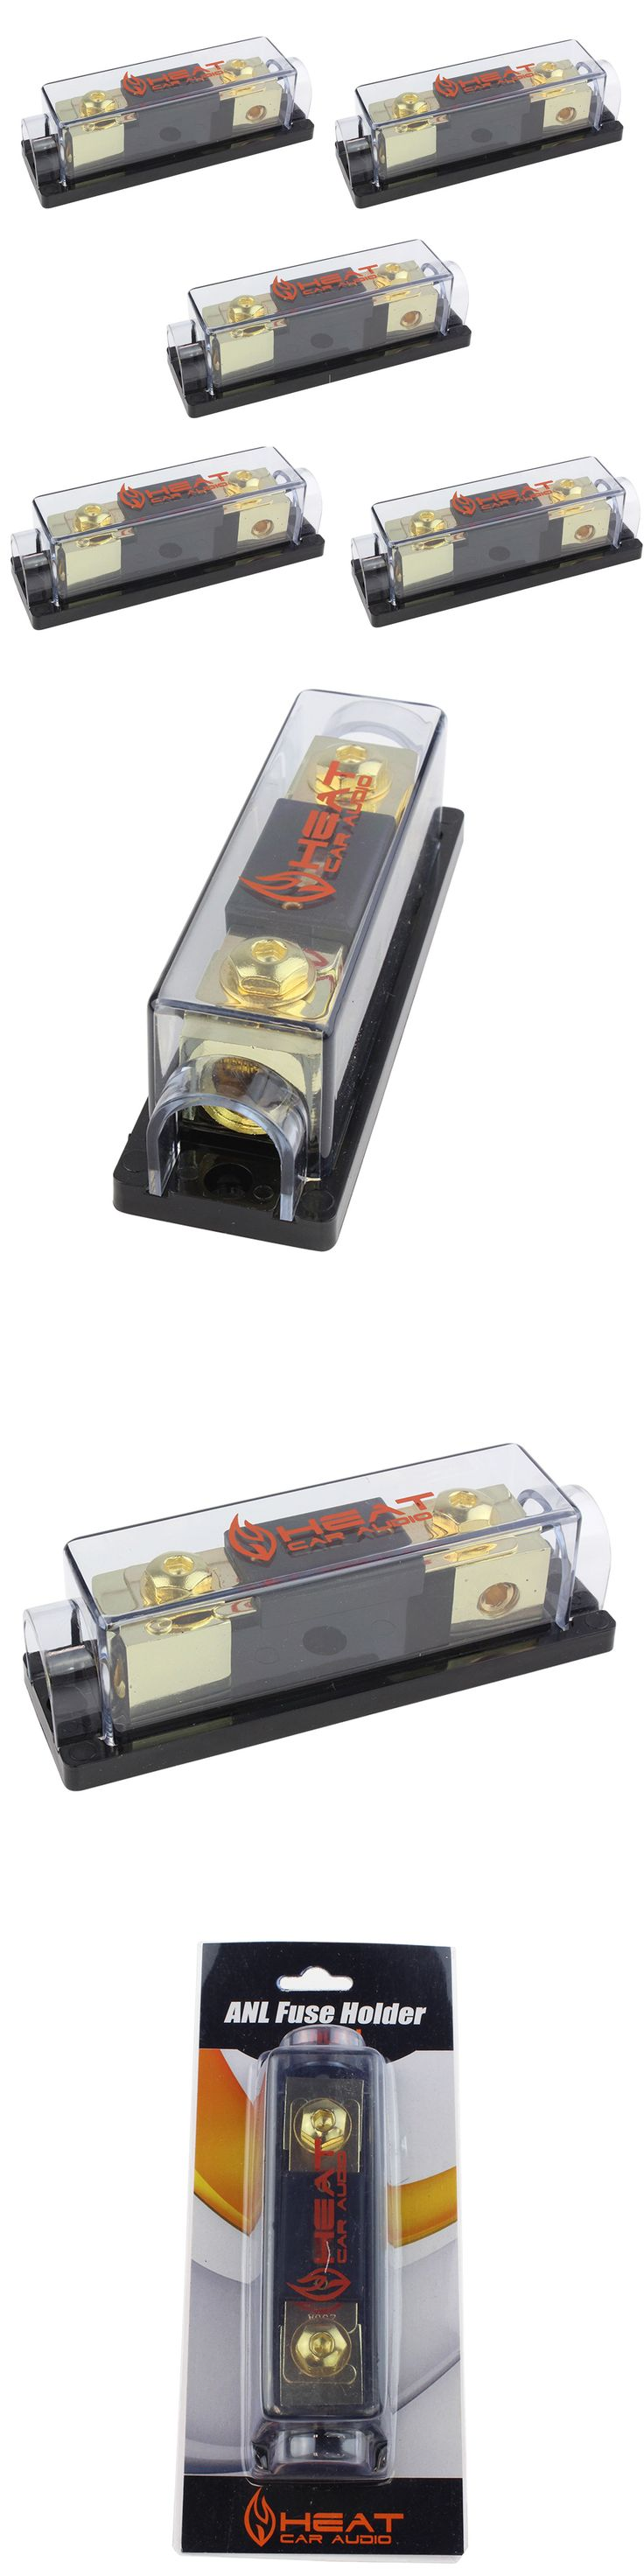 Fuses and Fuse Holders: 250 Amp Anl Fuse Holder Inline Block For Car Amp Installation Anlfh250 (5 Pack) BUY IT NOW ONLY: $31.9